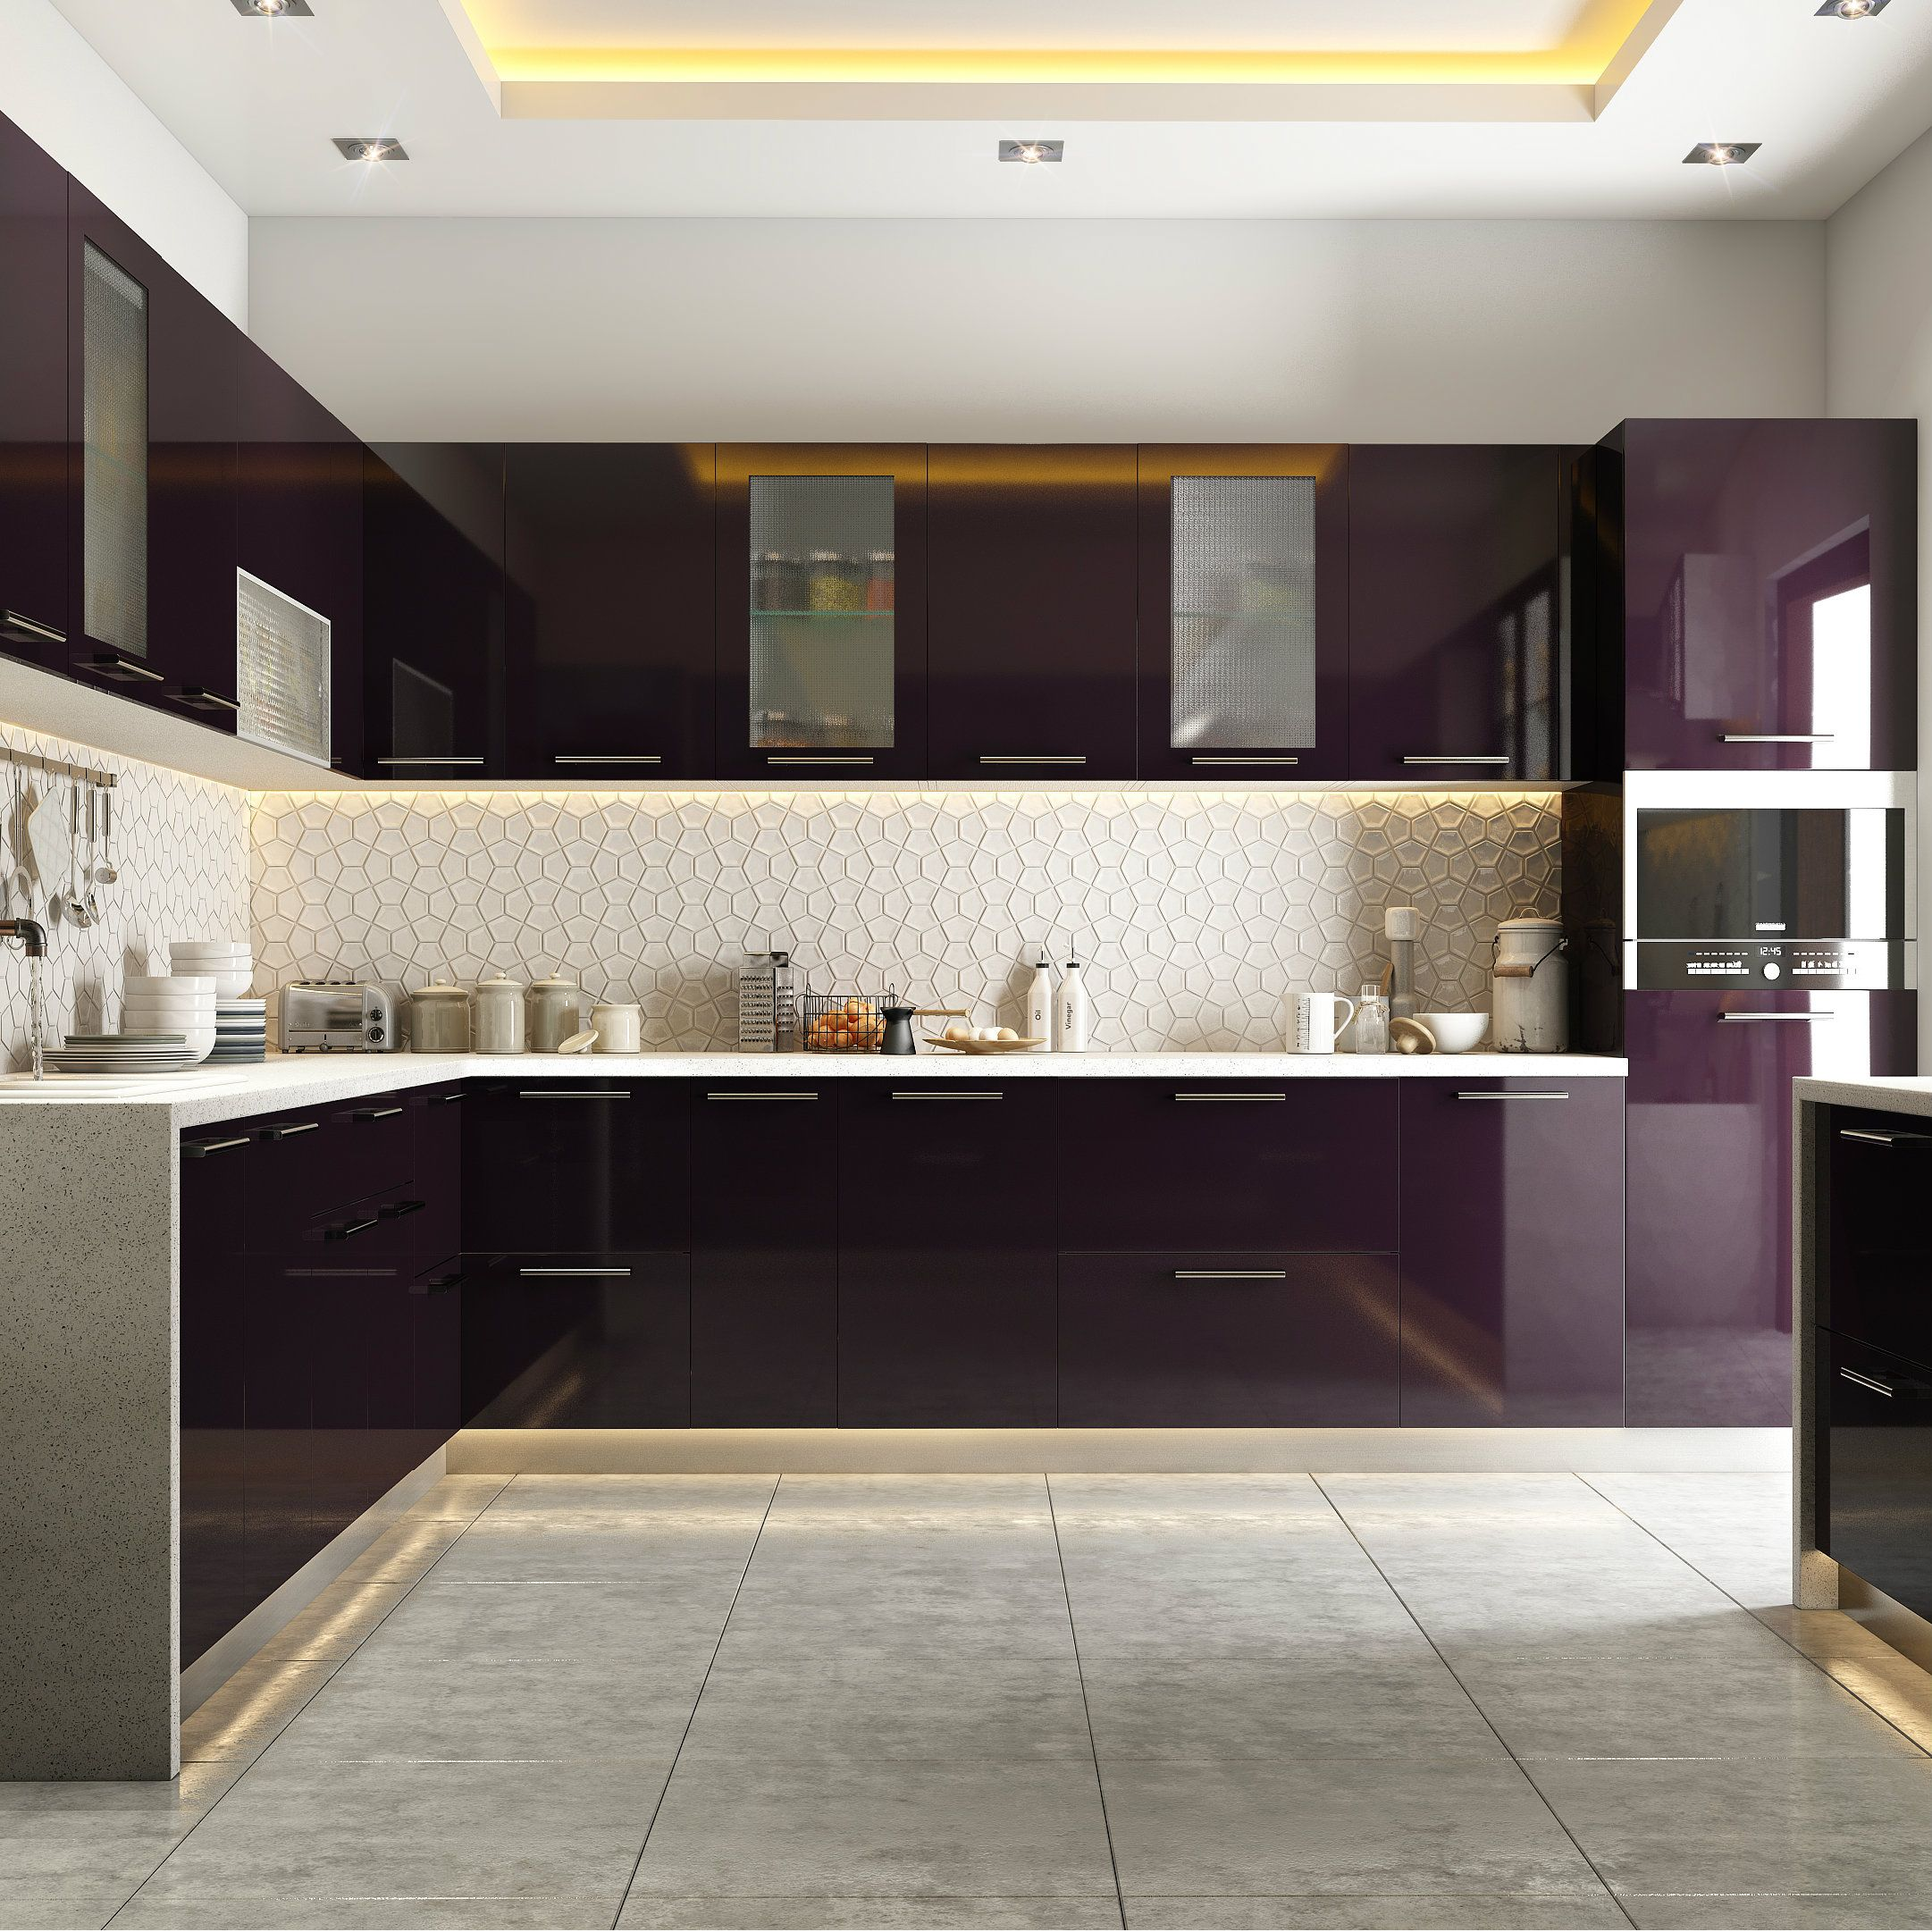 There Are #kitchen Themes That Will Inspire Anyone To Get